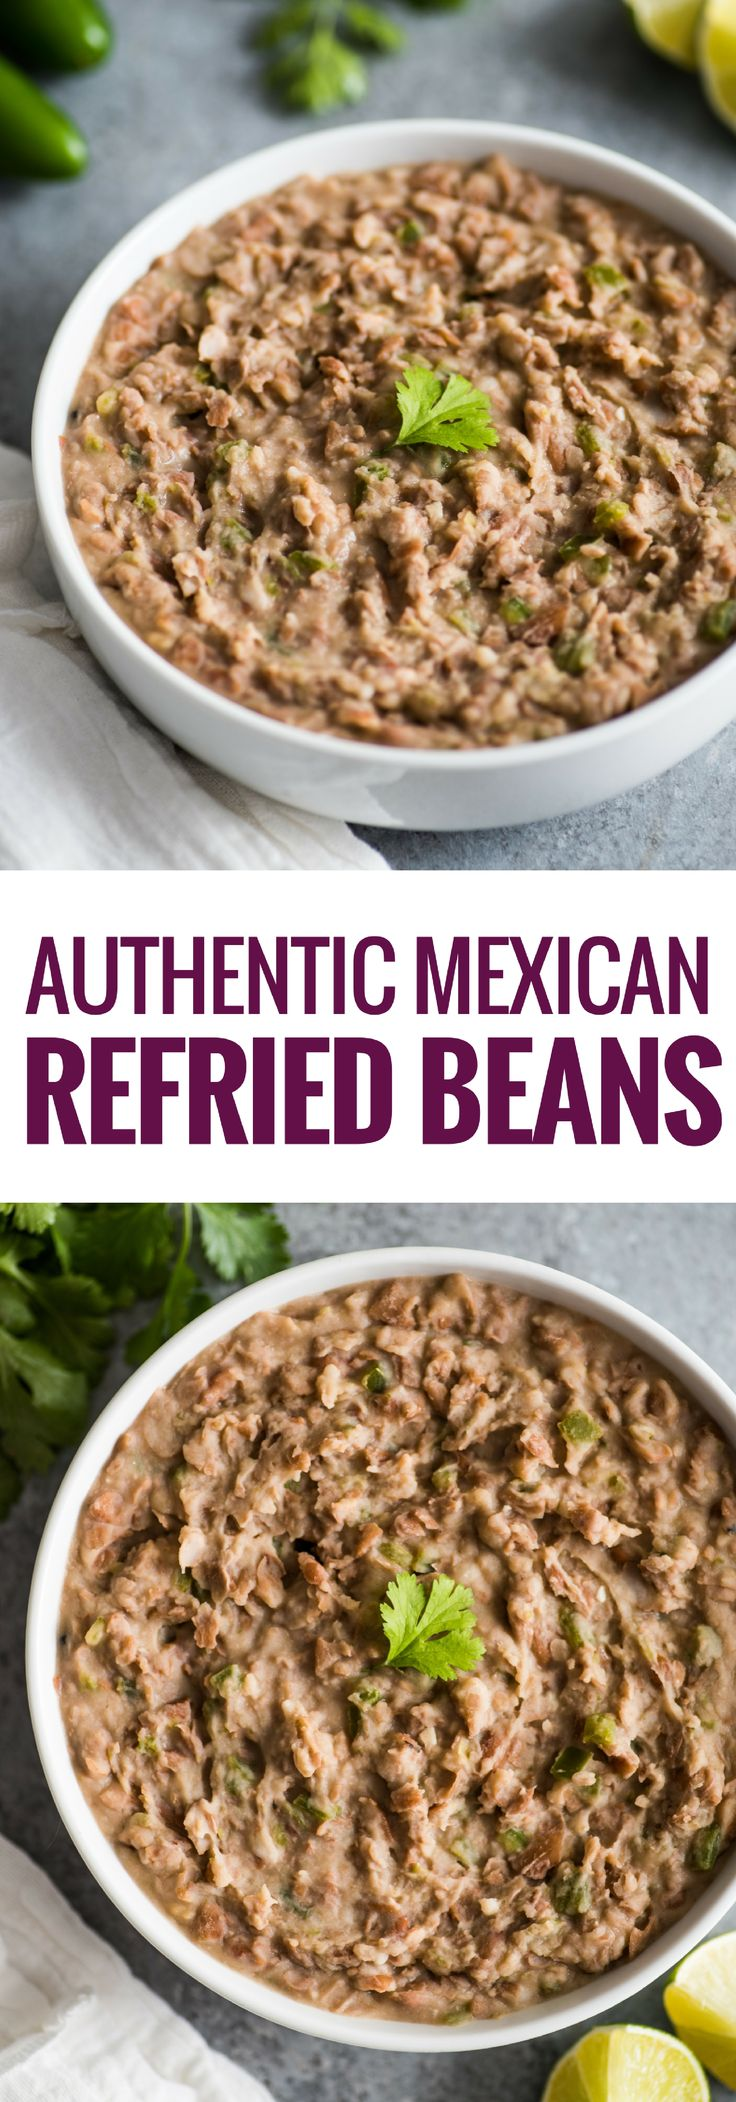 How to make Authentic Mexican Refried Beans on the stovetop or in the slow cooker with only a few simple ingredients. The perfect side dish to any Mexican meal!